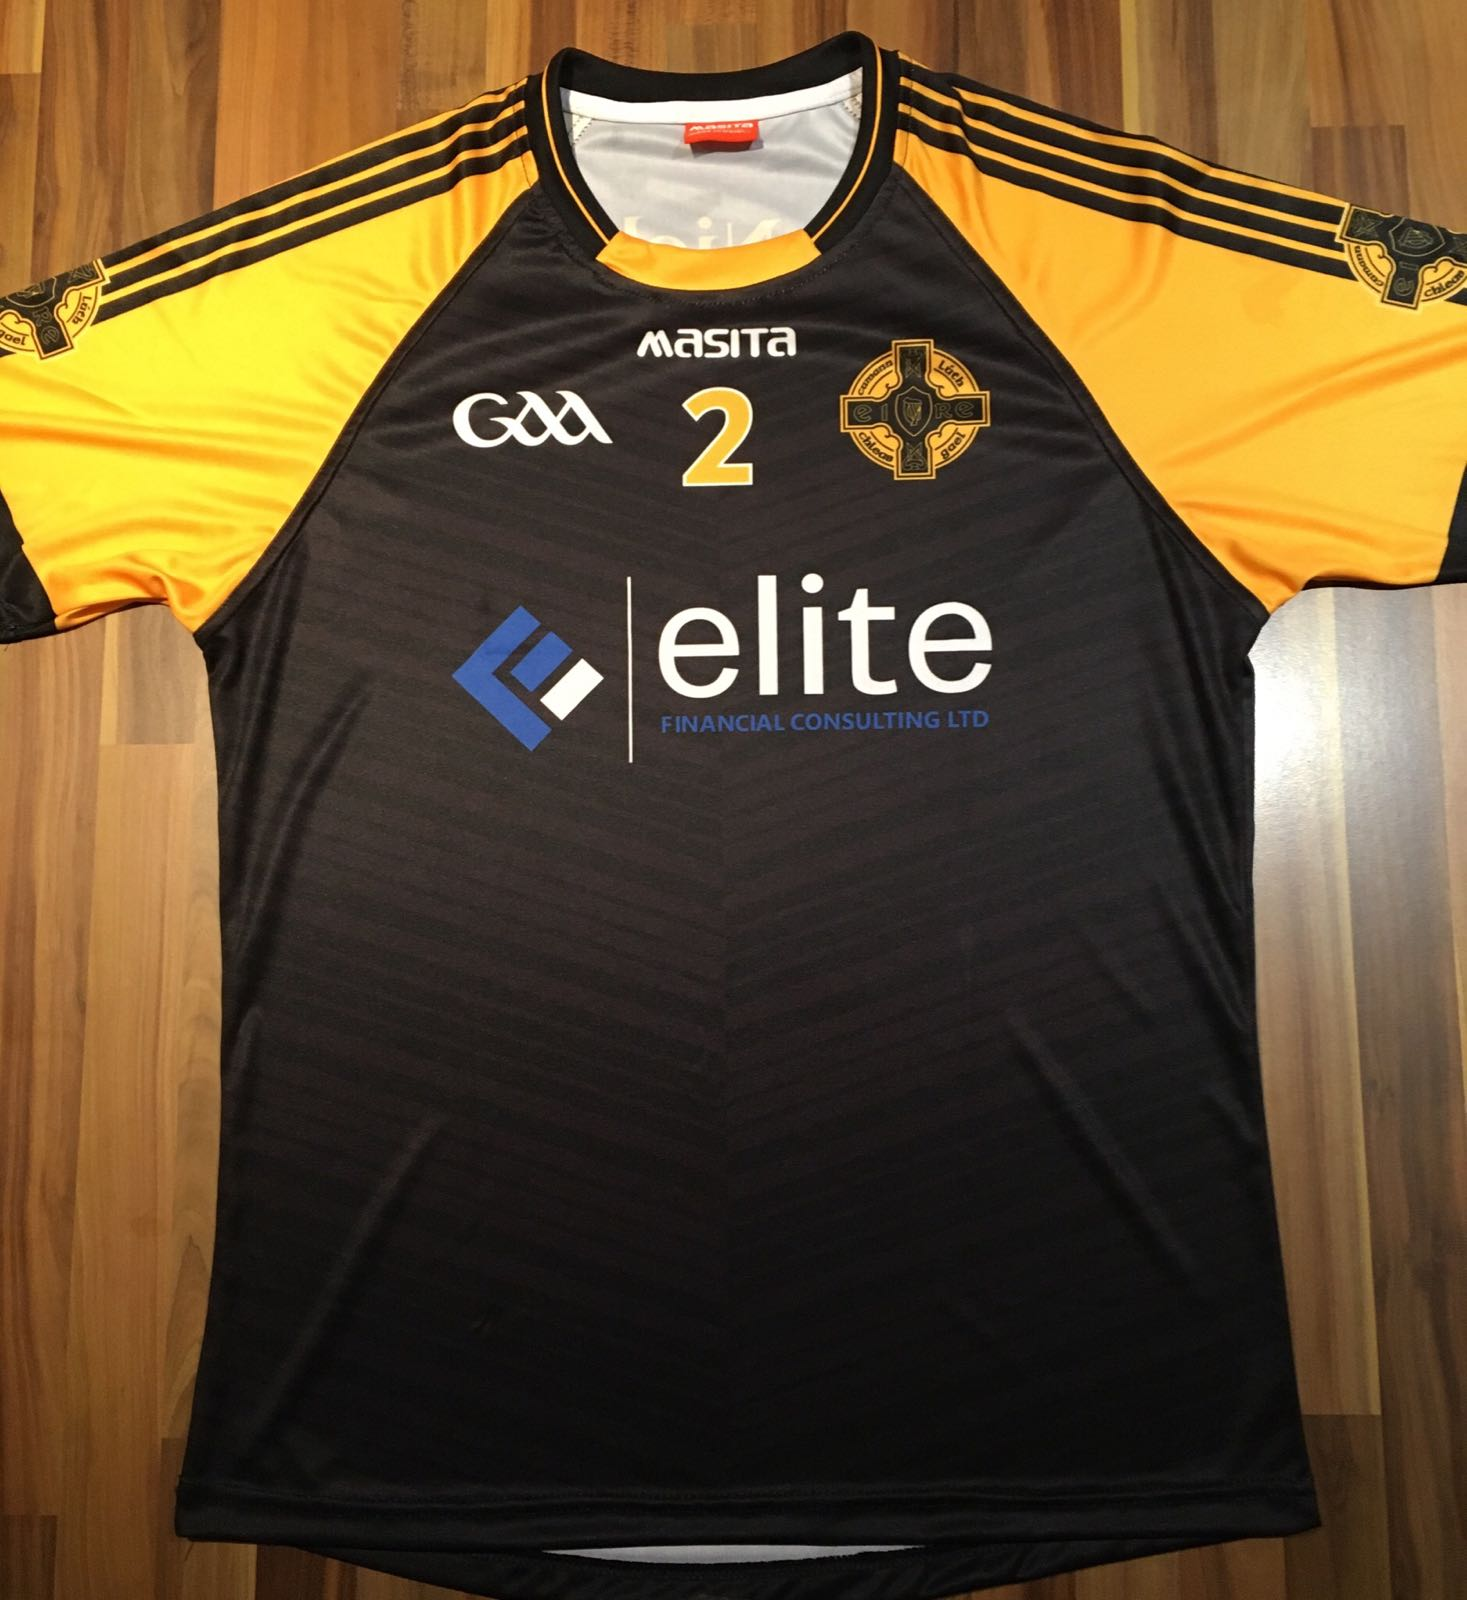 Image link:St Nicks GAA Bristol new kit 2018